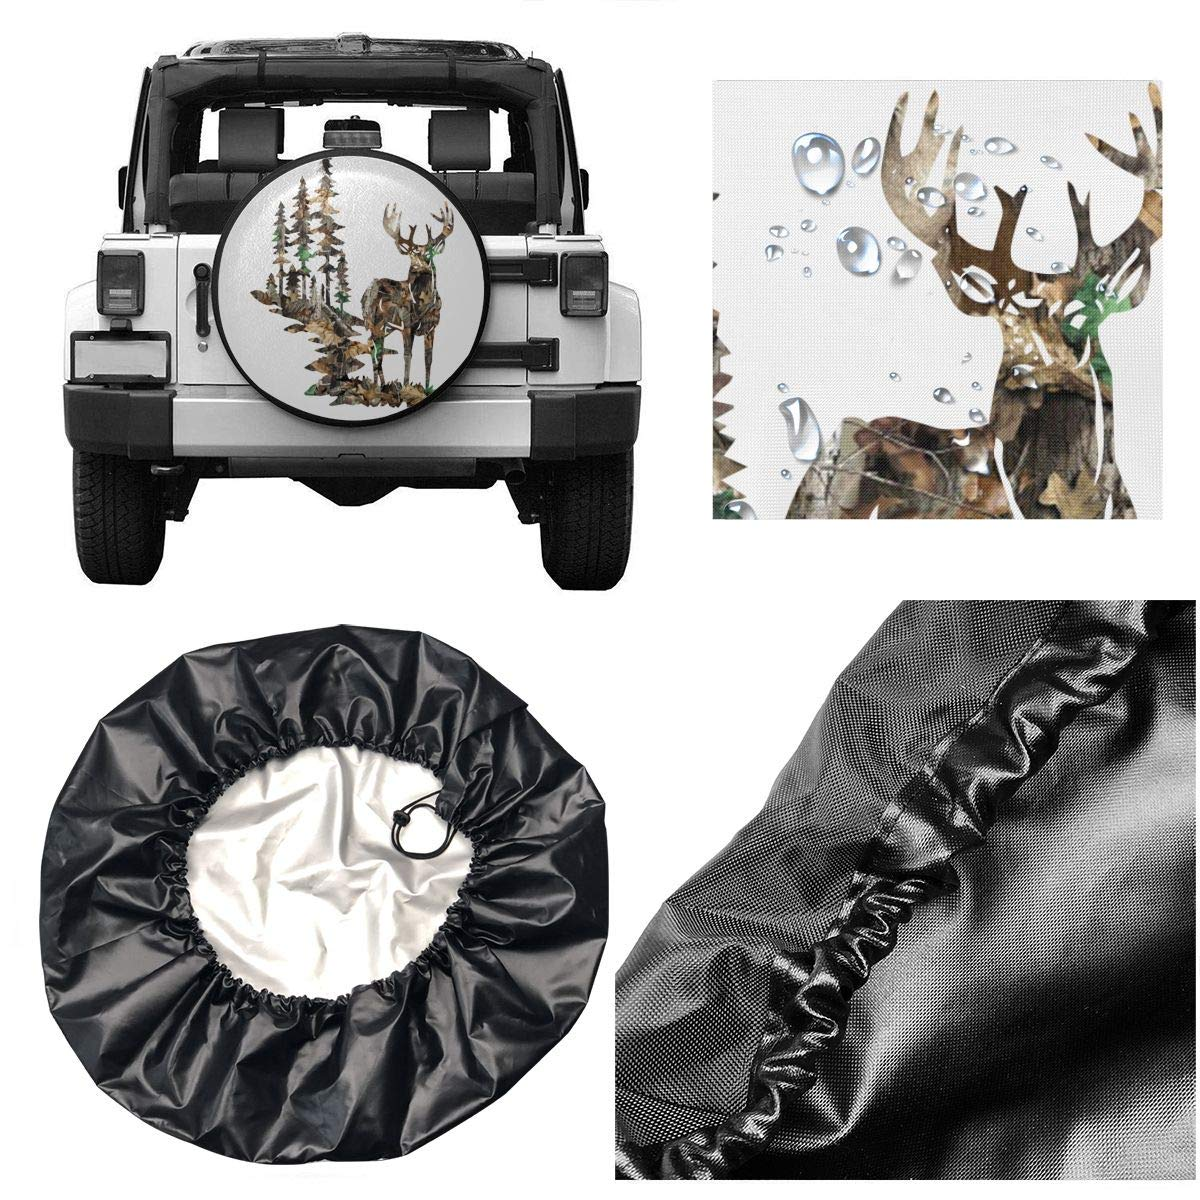 SUV and Various Vehicles 14 15 16 17 Inch Car Tire Cover Rainproof Protective Cover Forest Camoflauge Deer Water Proof Universal Spare Wheel Tire Cover Fit for Trailer RV